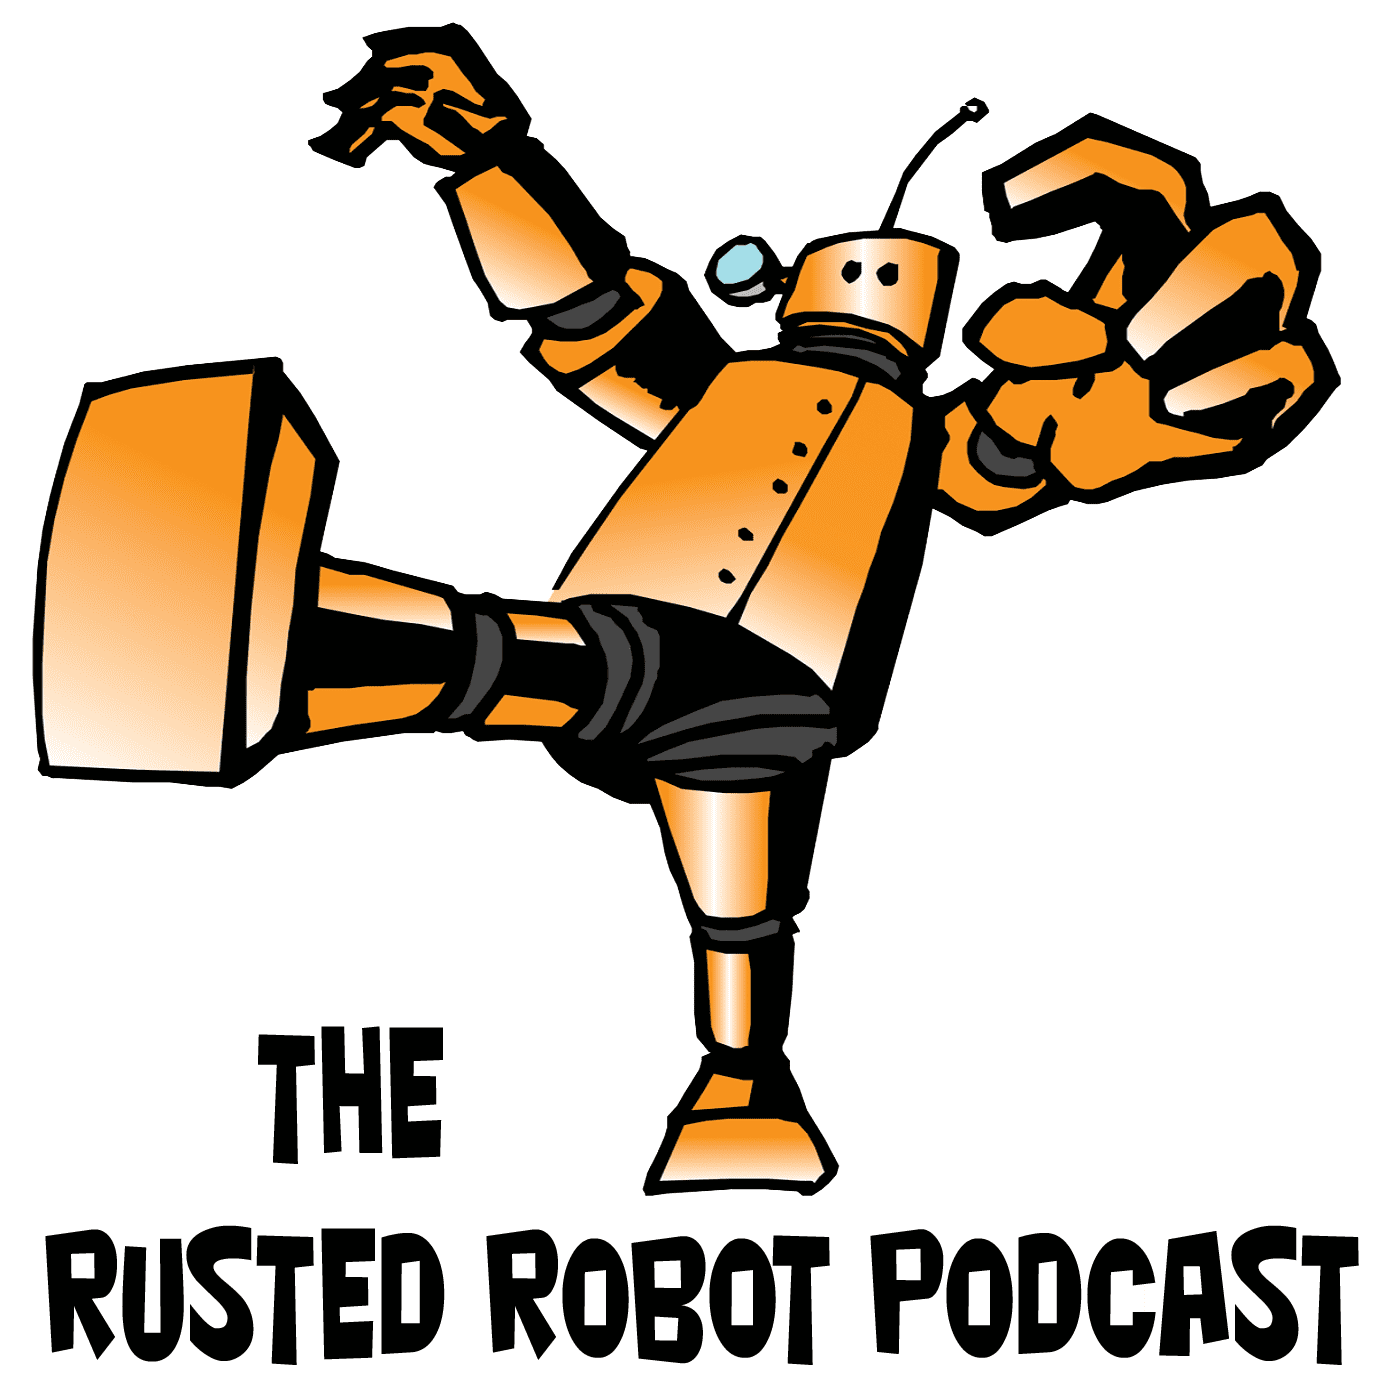 The Rusted Robot Podcast